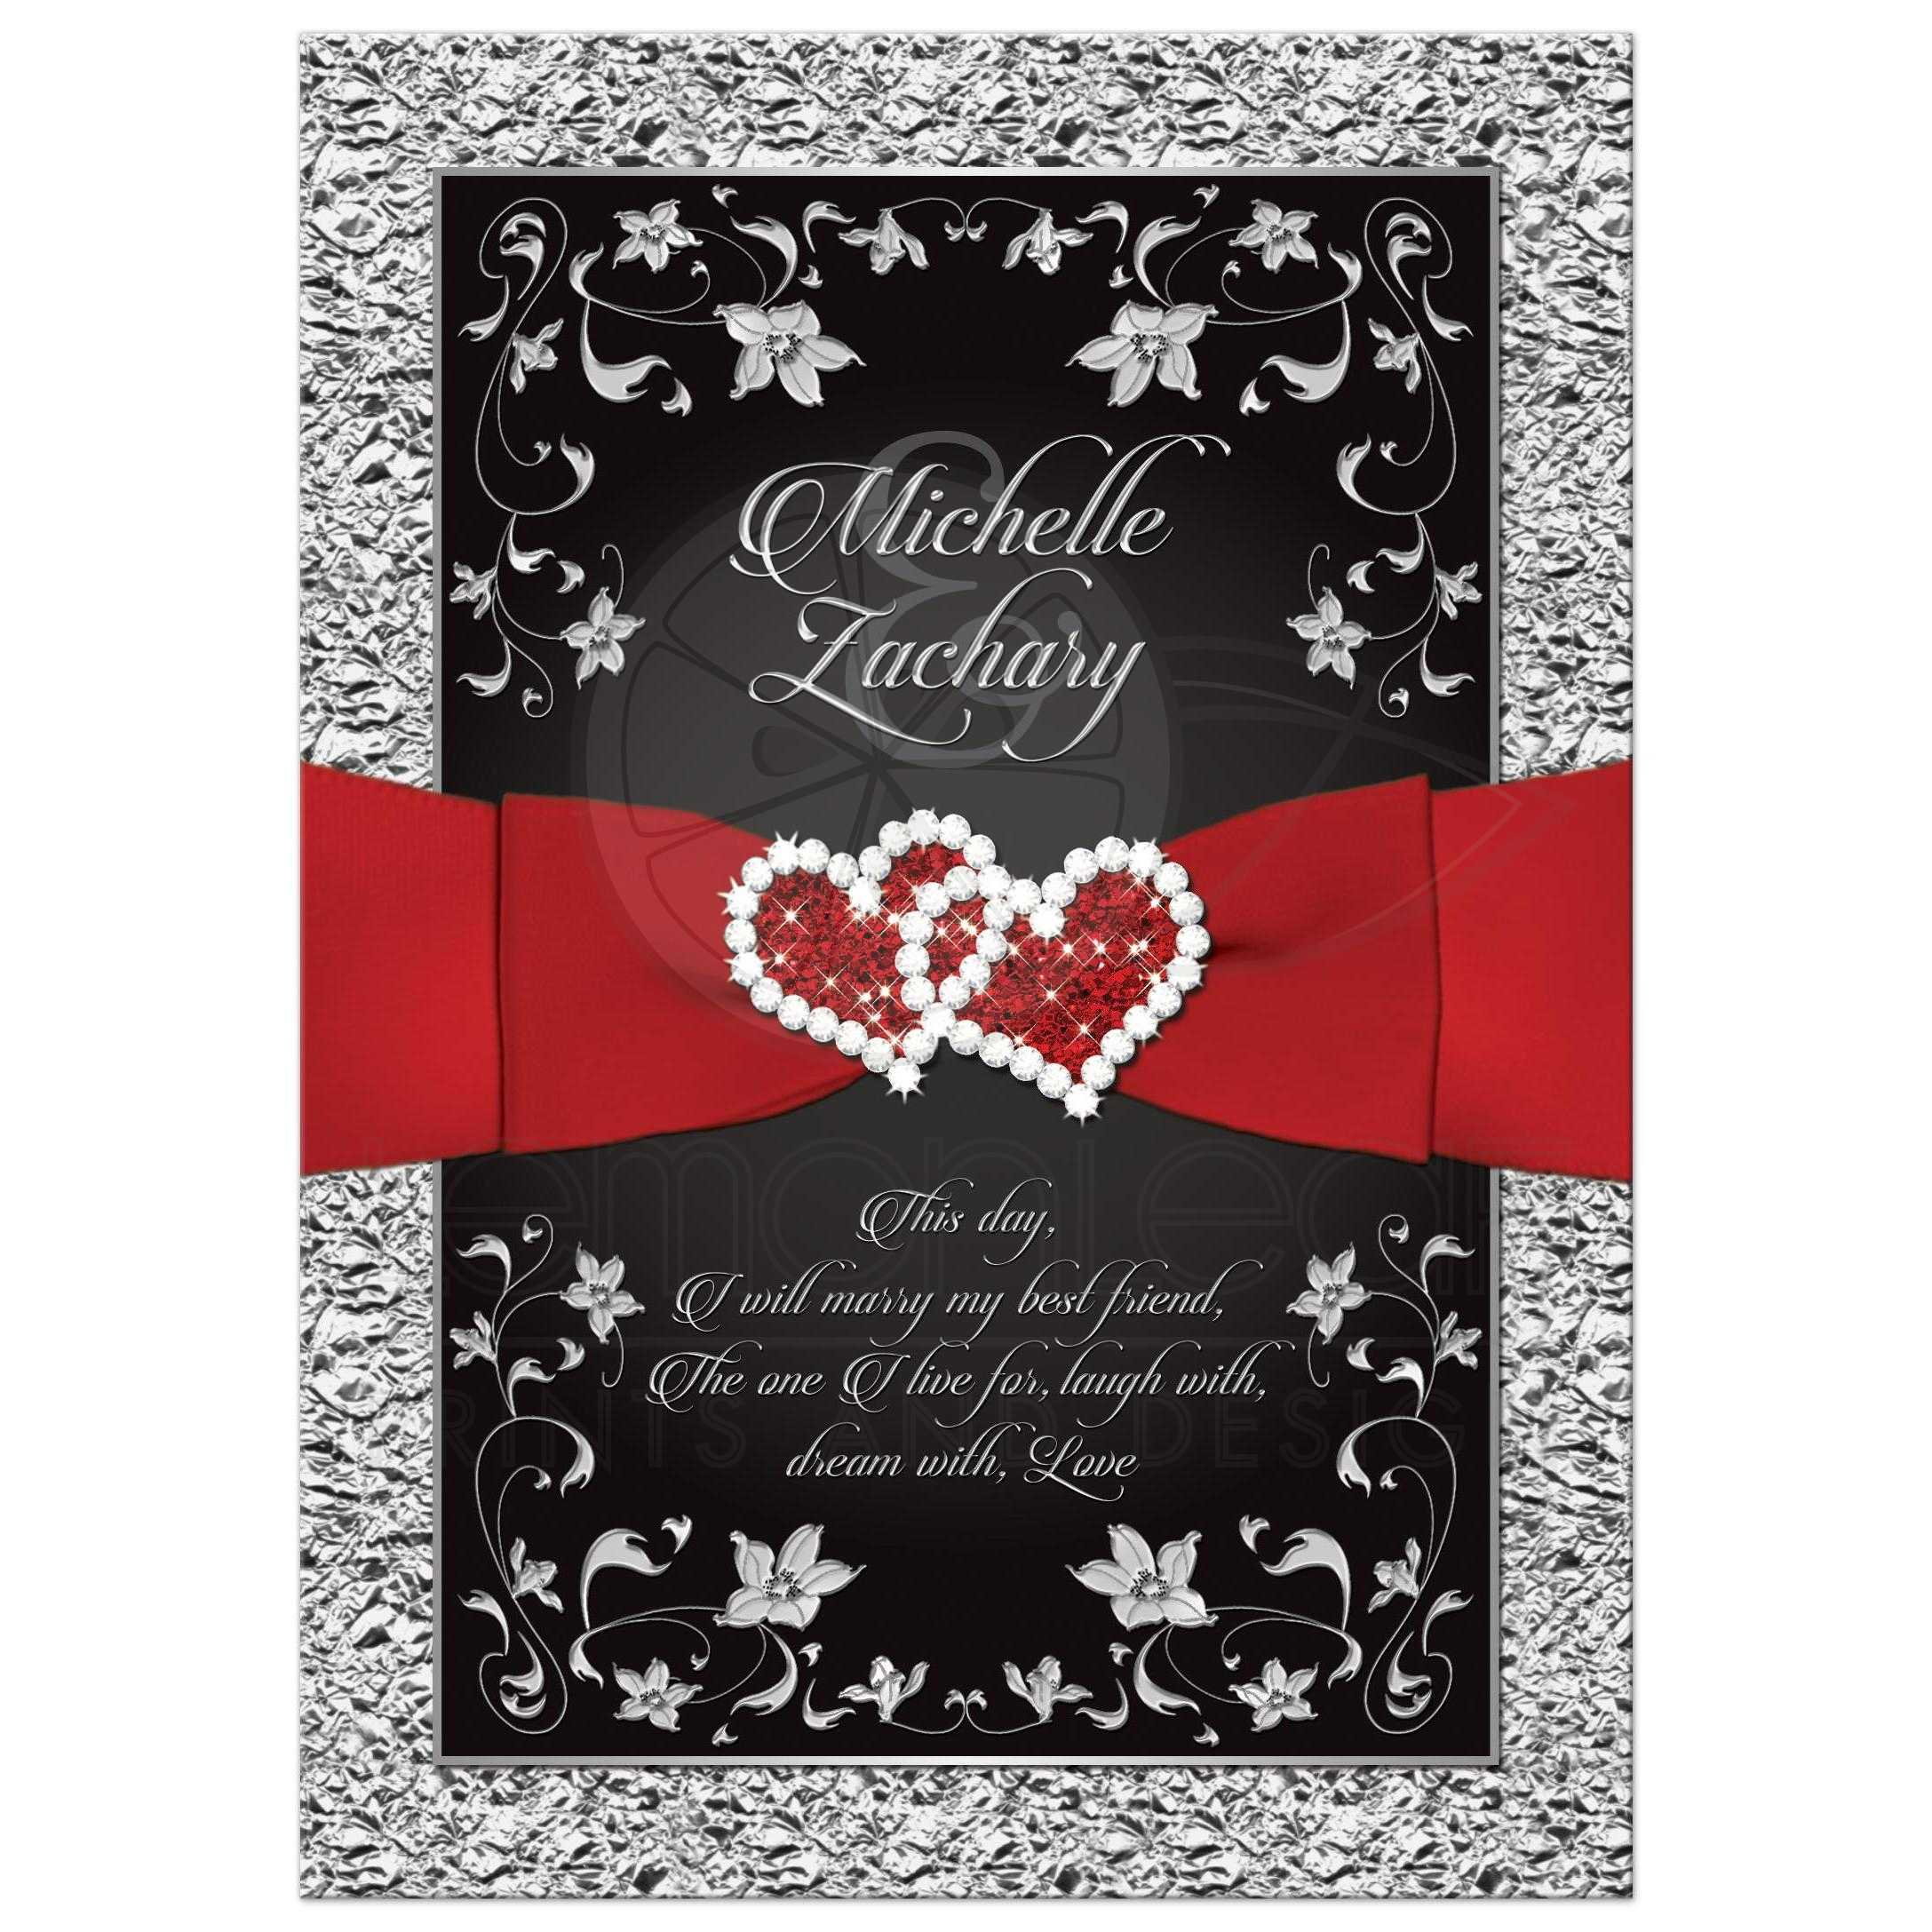 wedding invitations black white and red - Forte.euforic.co